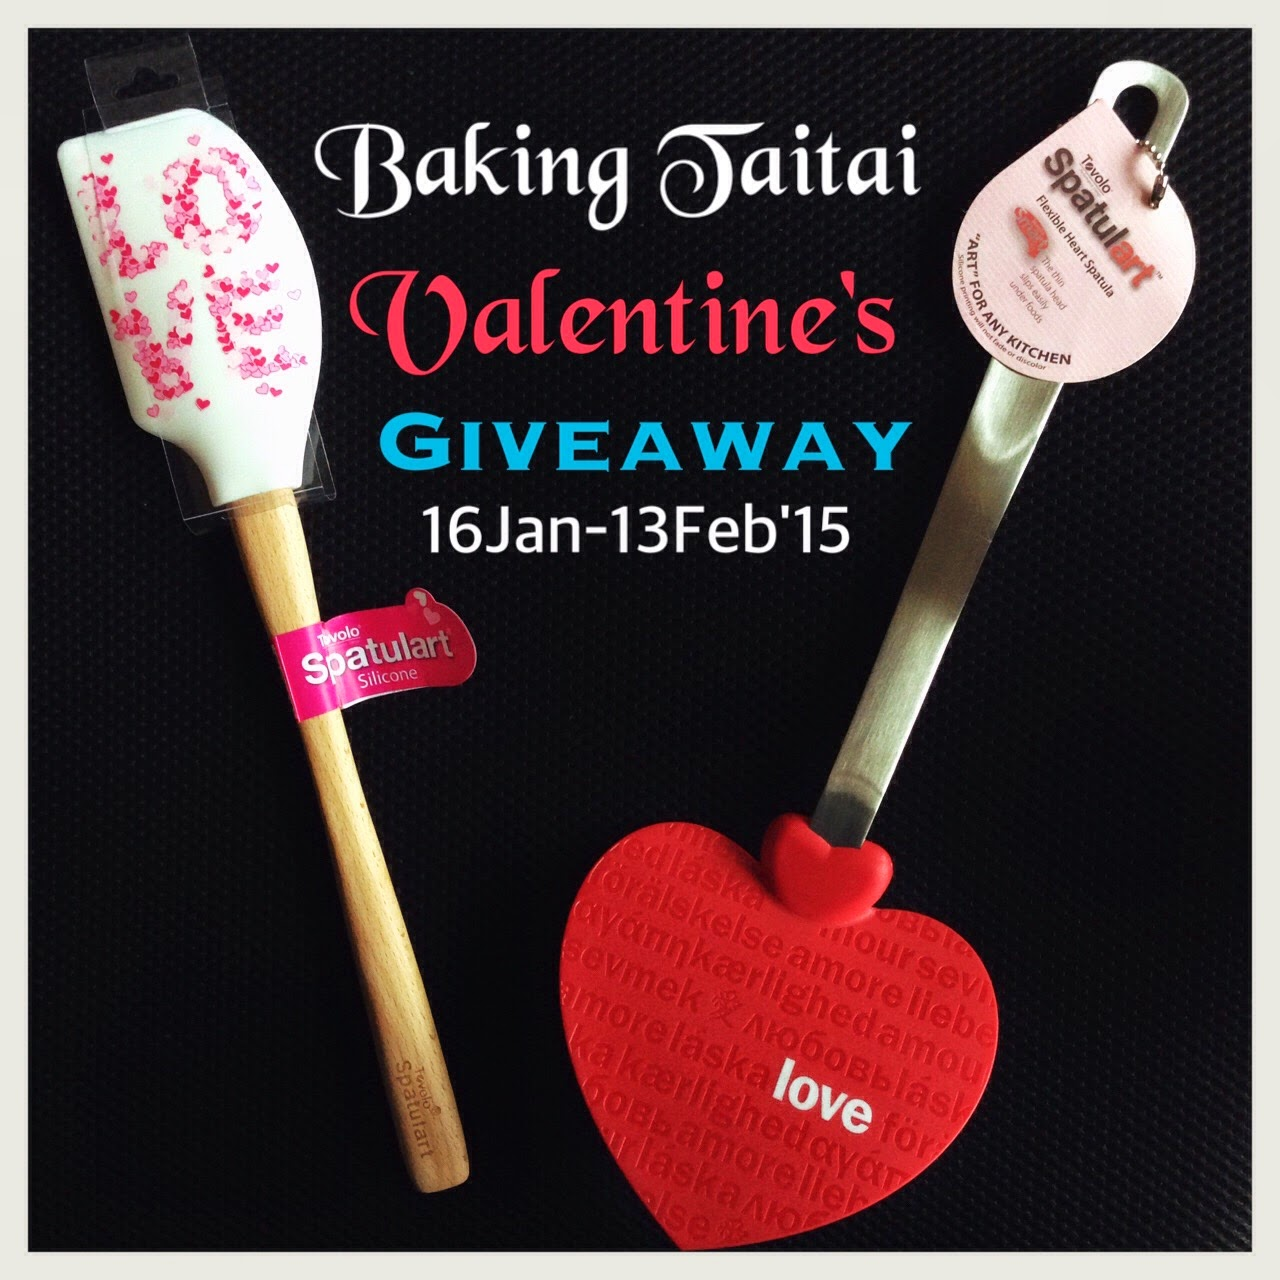 Click on image to take part in the Valentine's Giveaway 参加情人节赠品活动